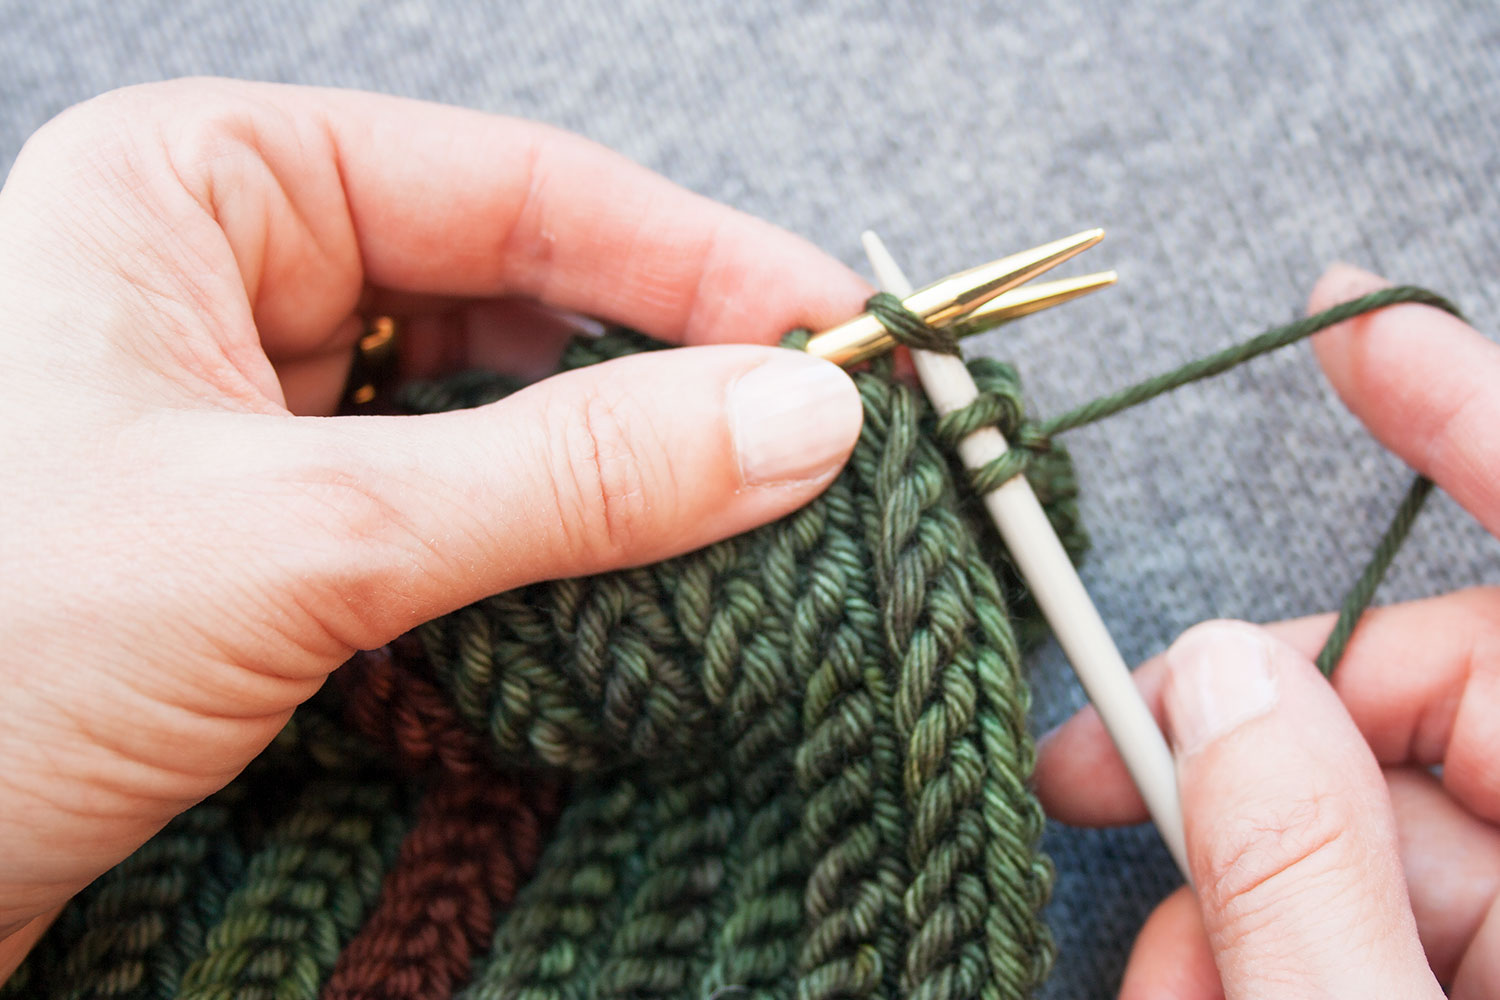 With two stitches already on third needle, it's inserted into the first stitch of the front needle knitwise.